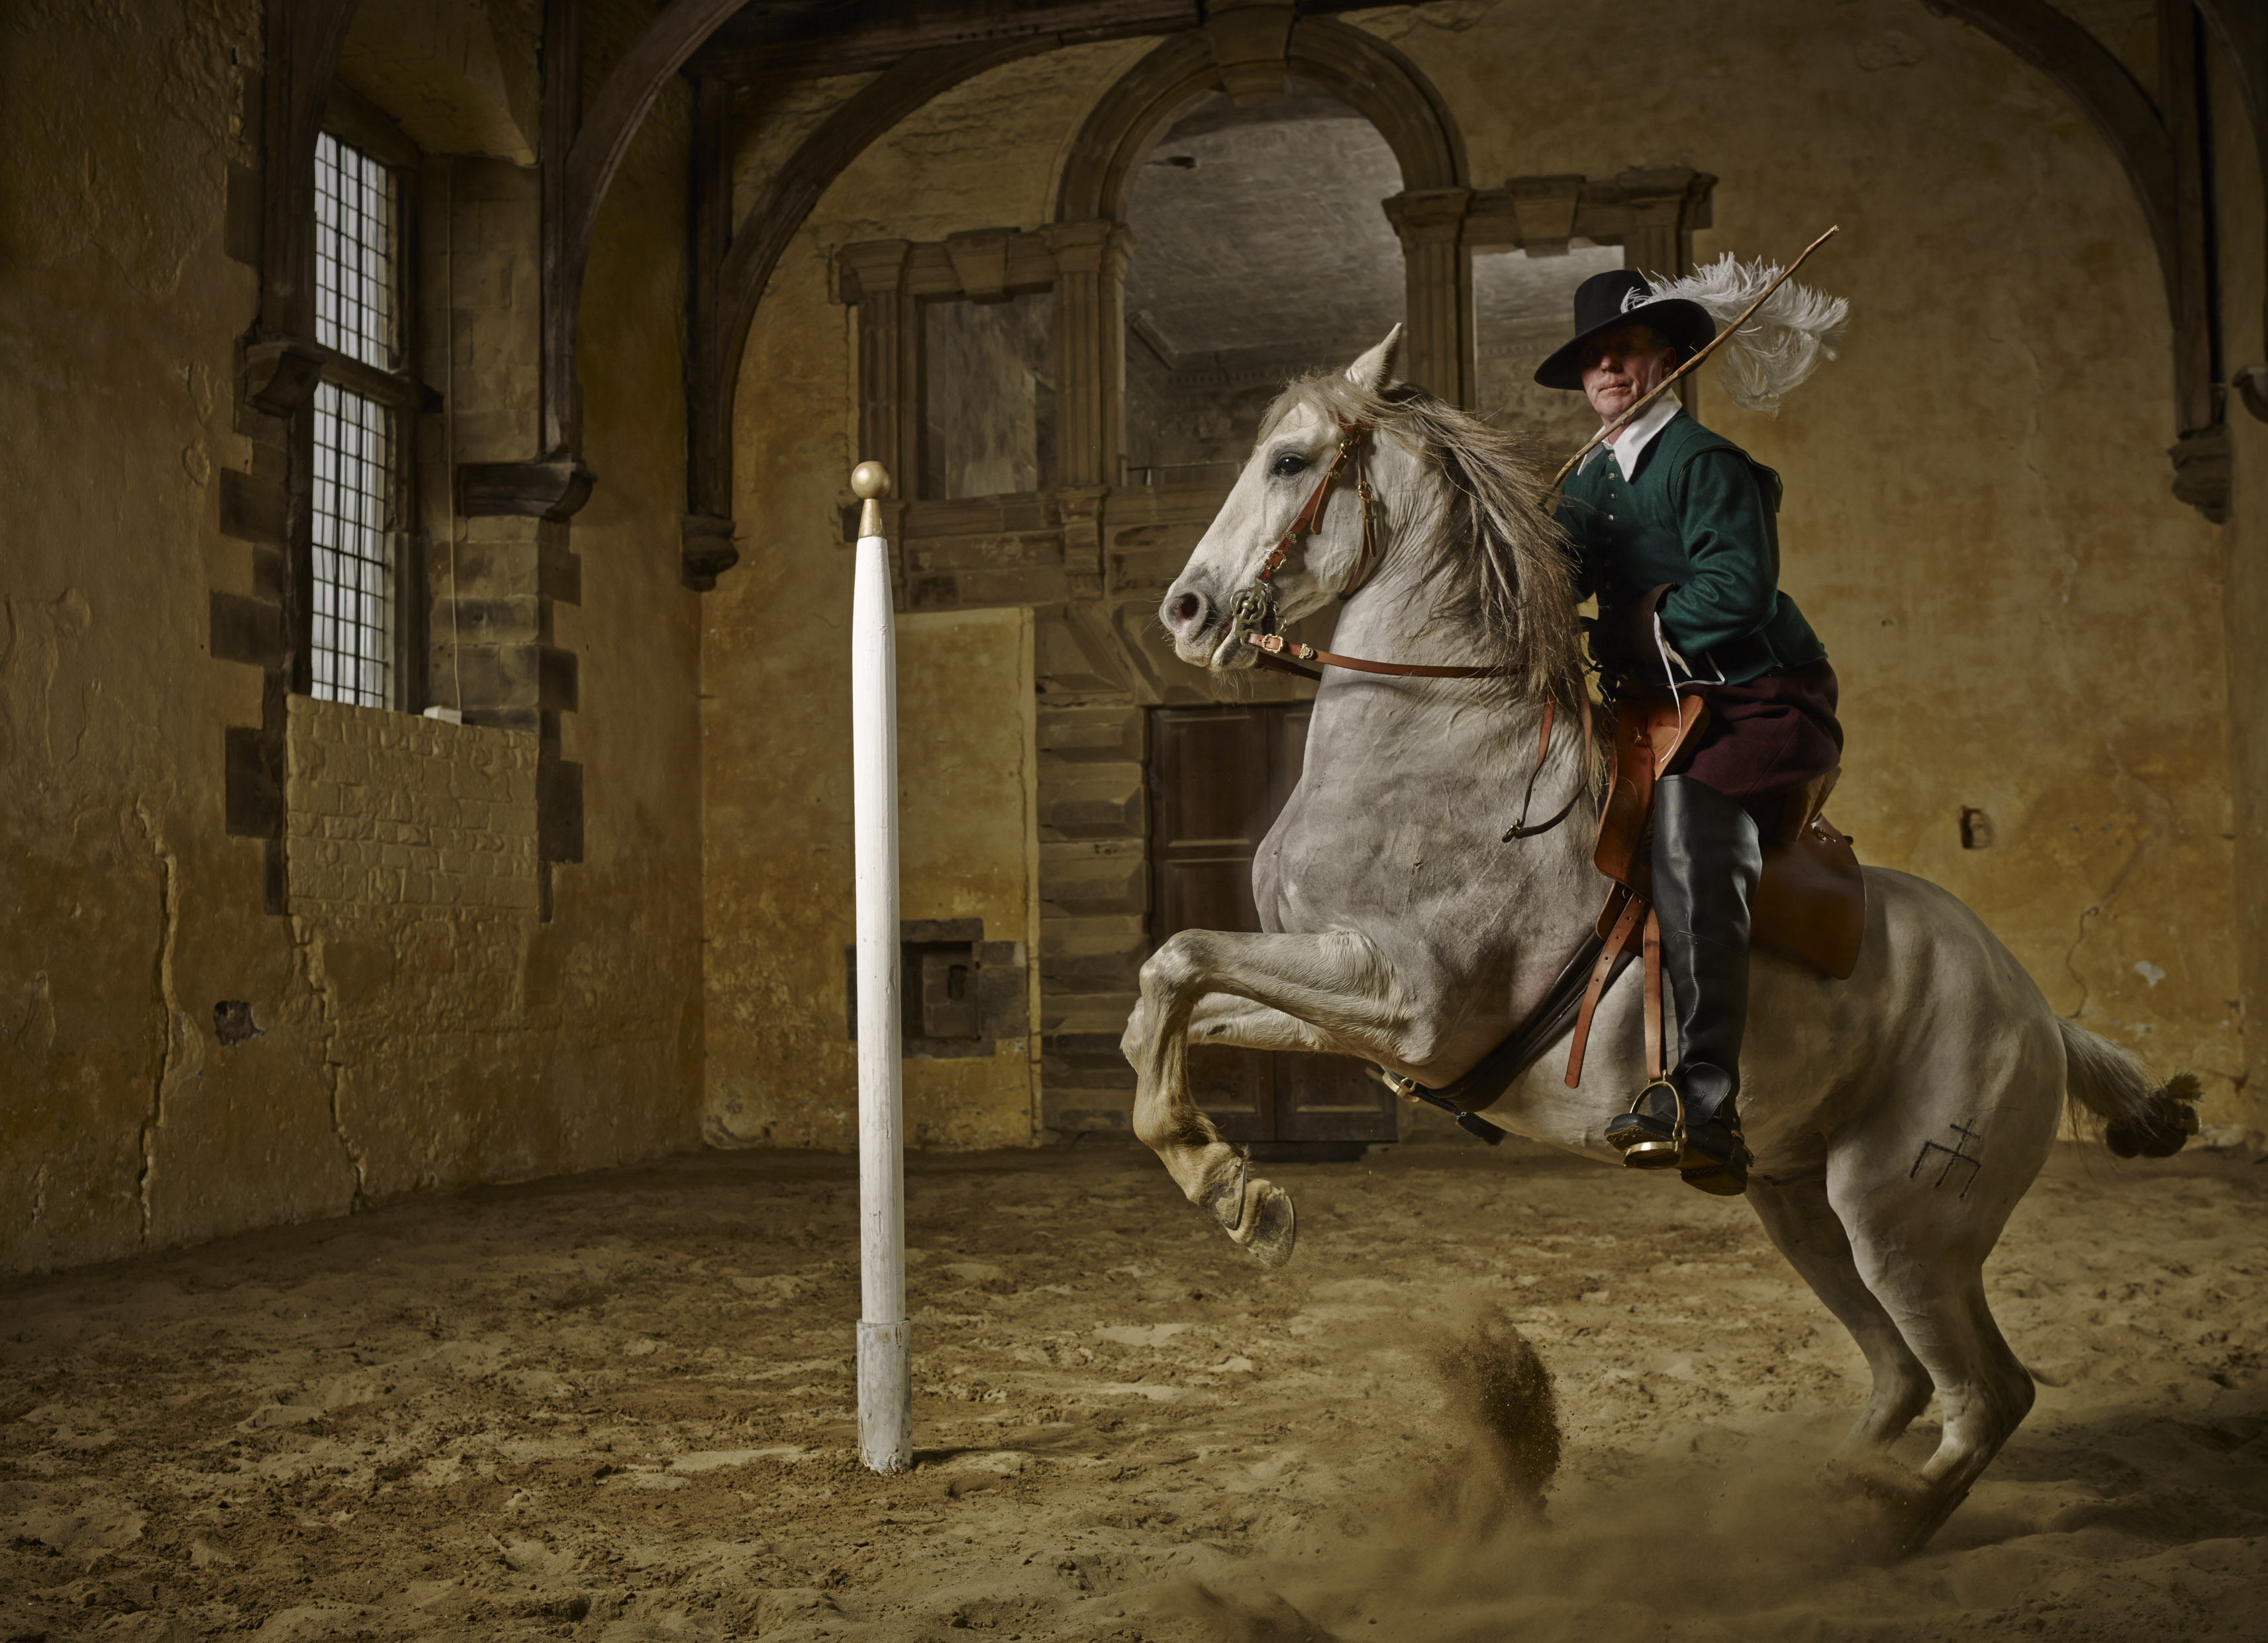 211 01 028 HT image - French Dancing Horses At The Home Of 17th Century Master Horseman William Cavendish